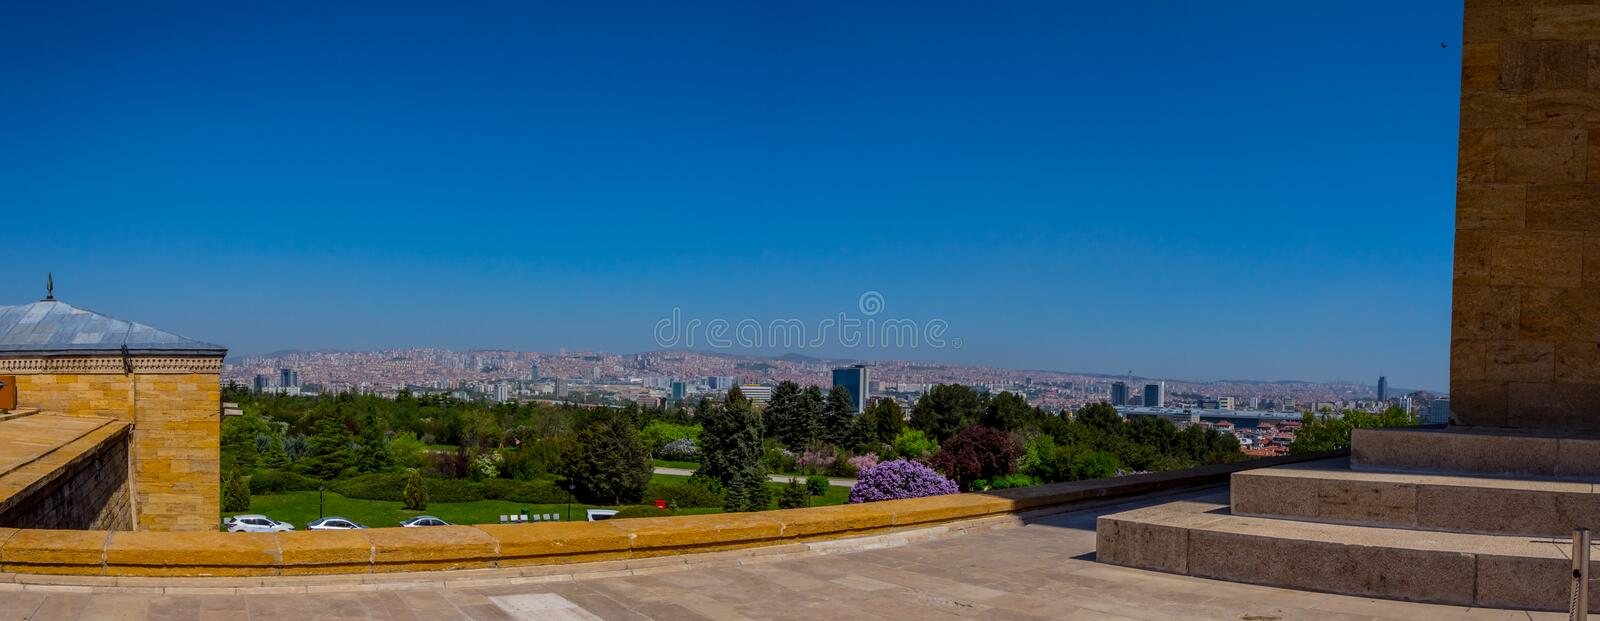 Panoramic view to the city of Ankara from the Memorial tomb stock image